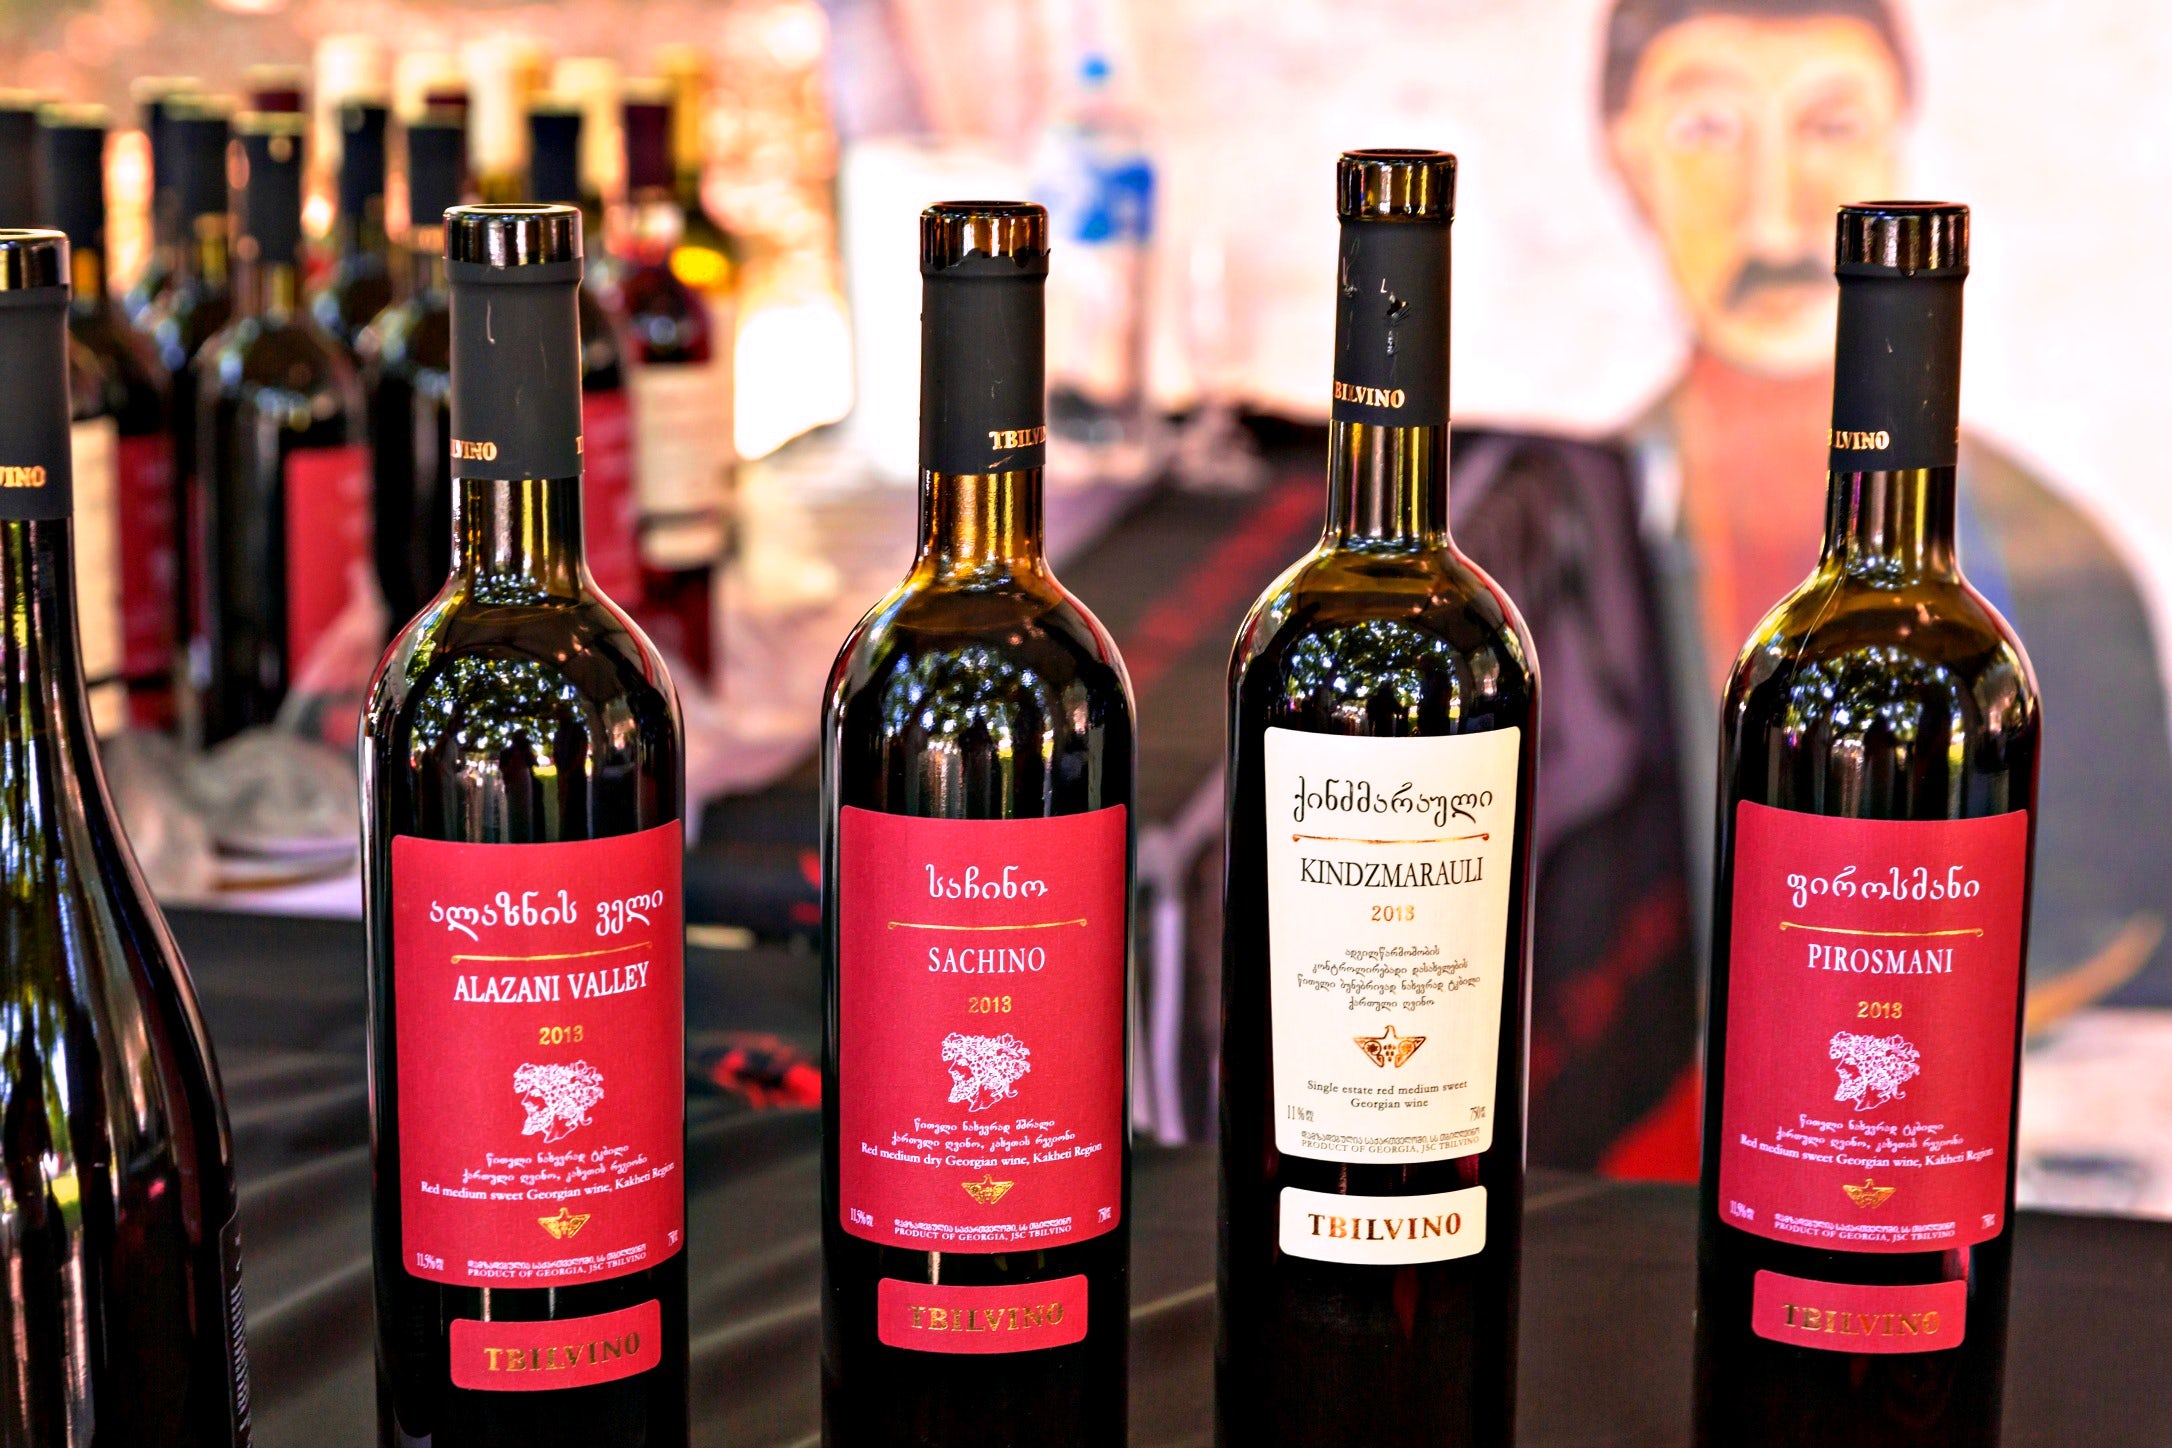 Georgian Wine, more than just a wine